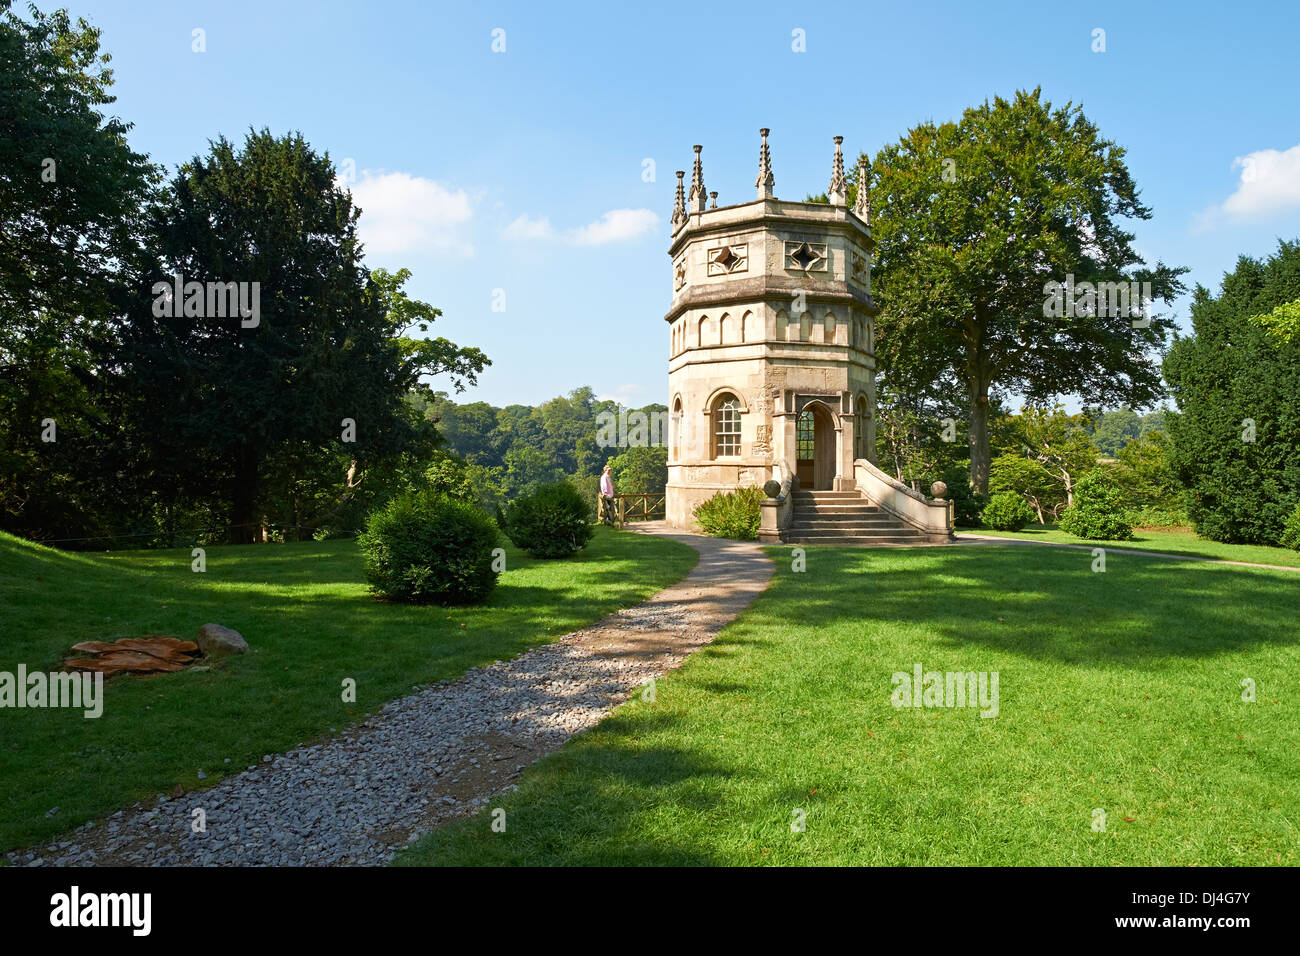 A folly on the grounds of the Cistercian Monastery Fountains Abbey North Yorkshire England. - Stock Image